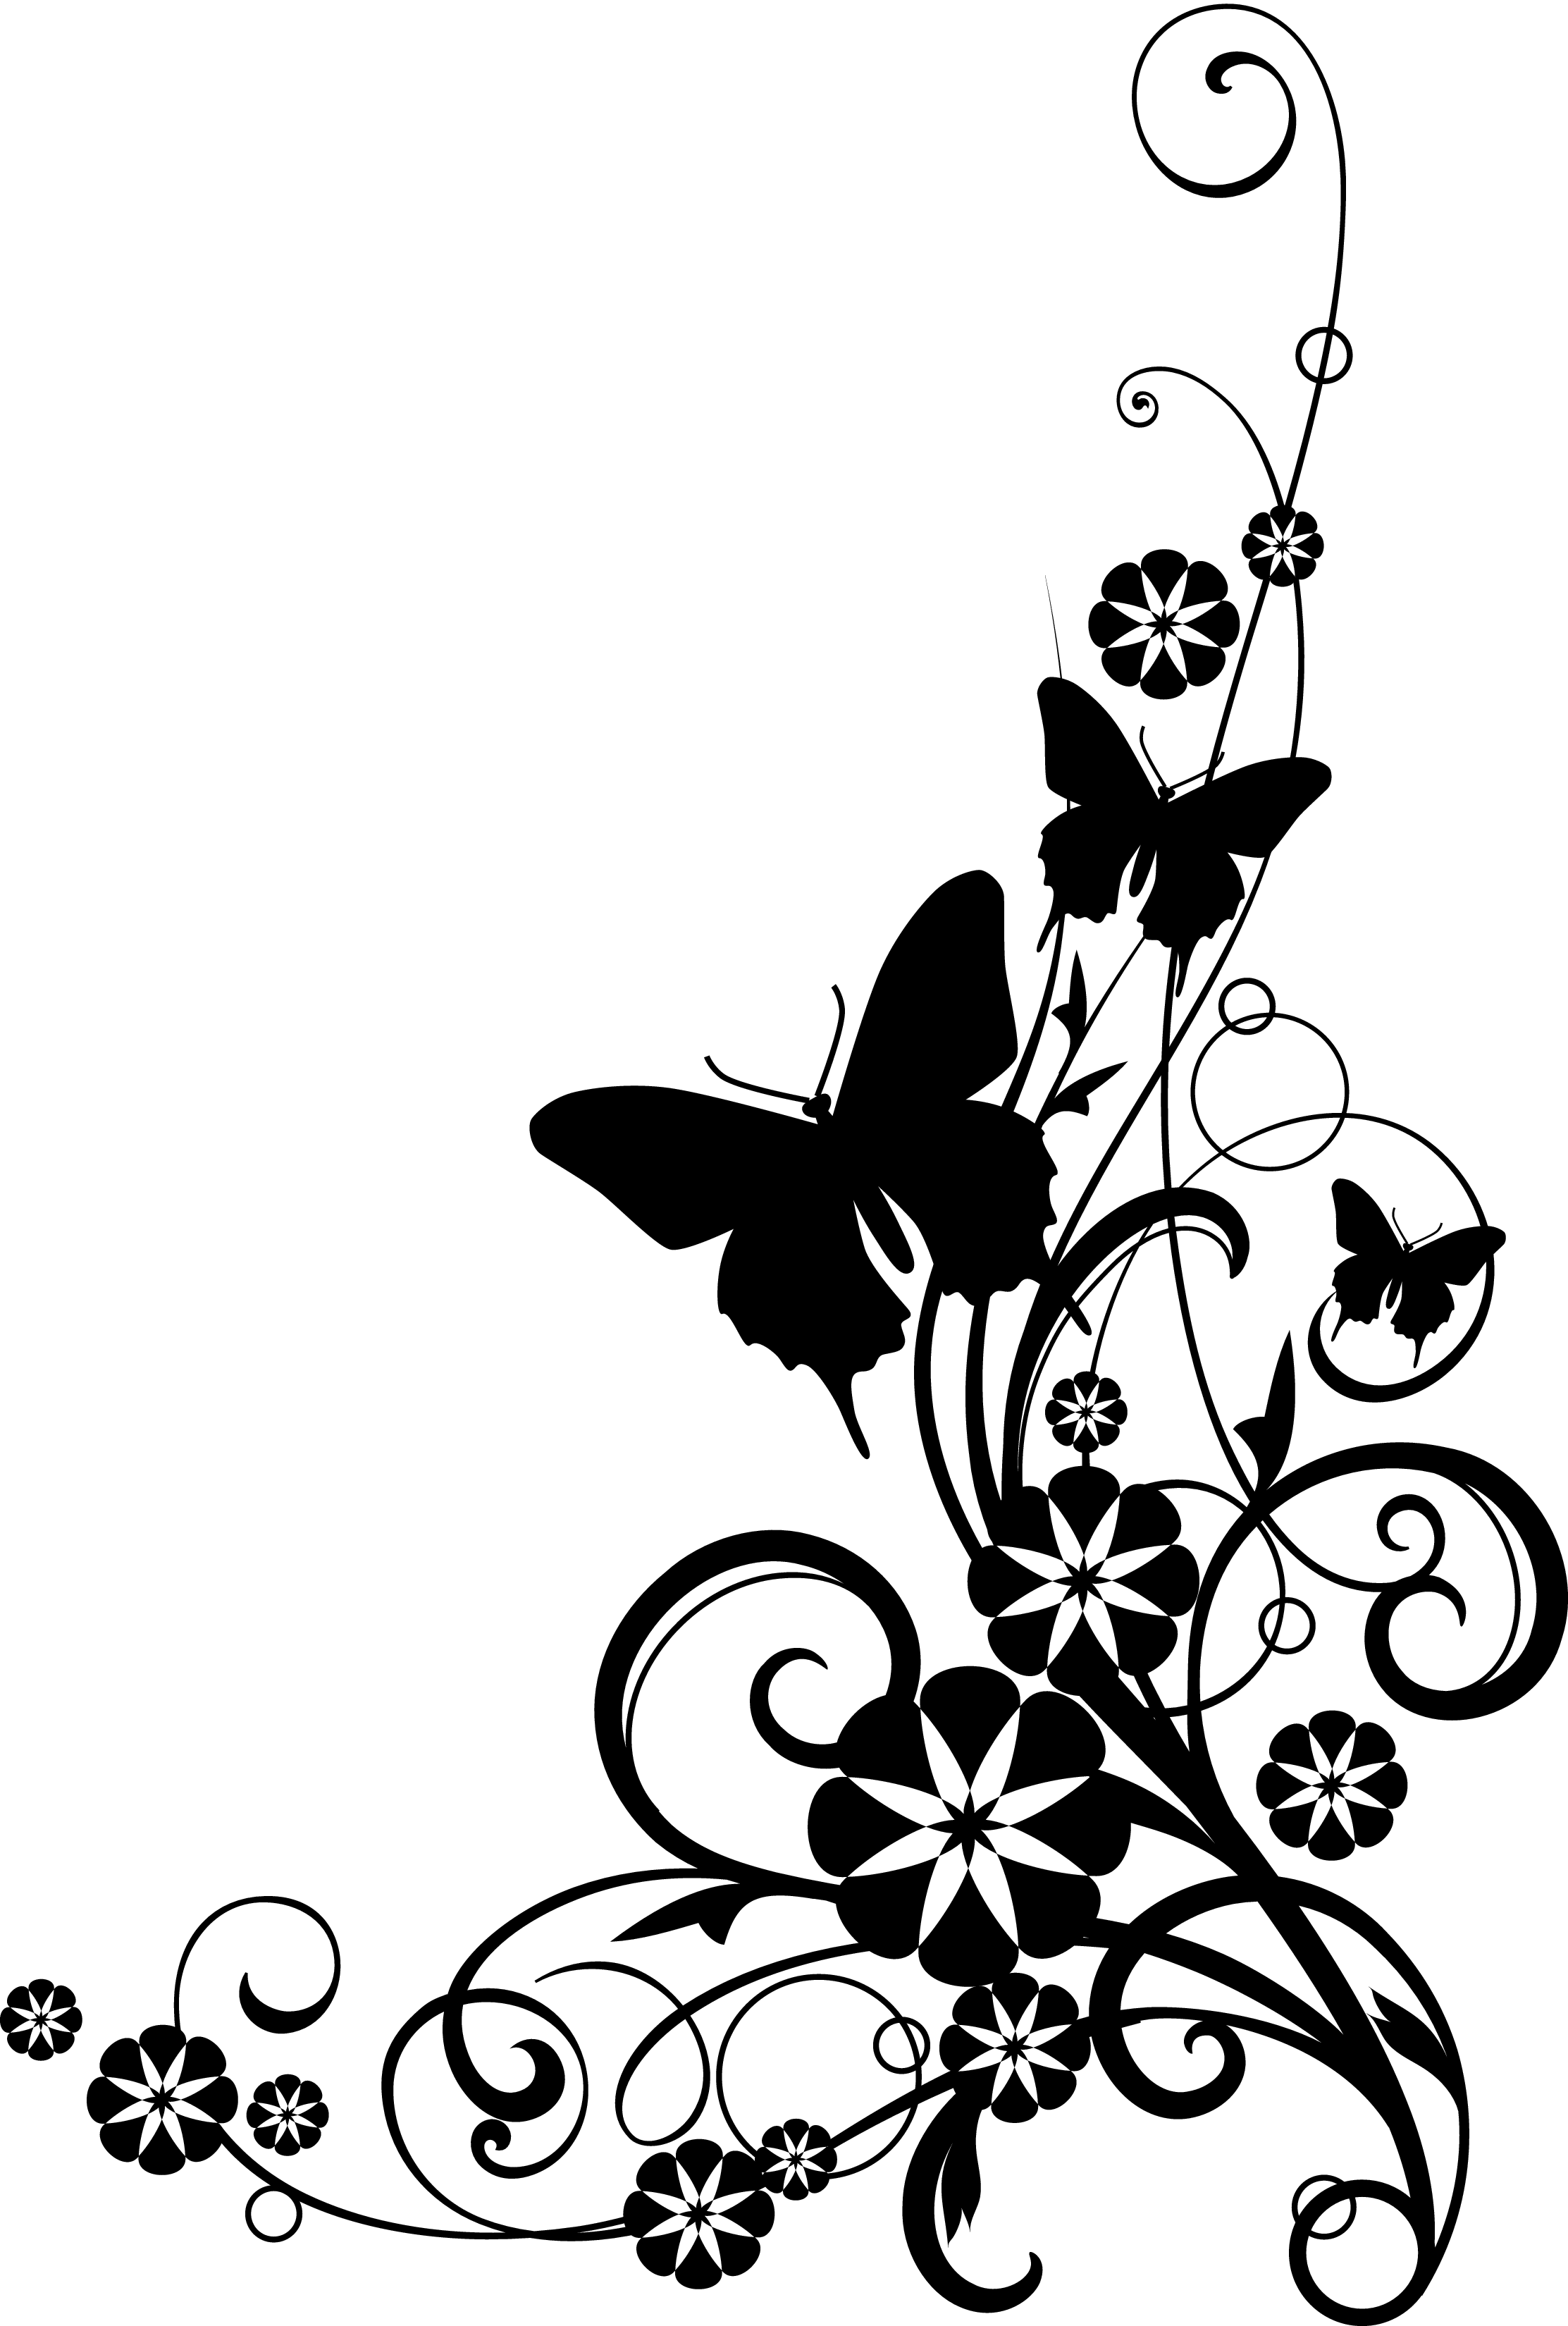 Garden site clipartfest selecting. Flower clipart elegant